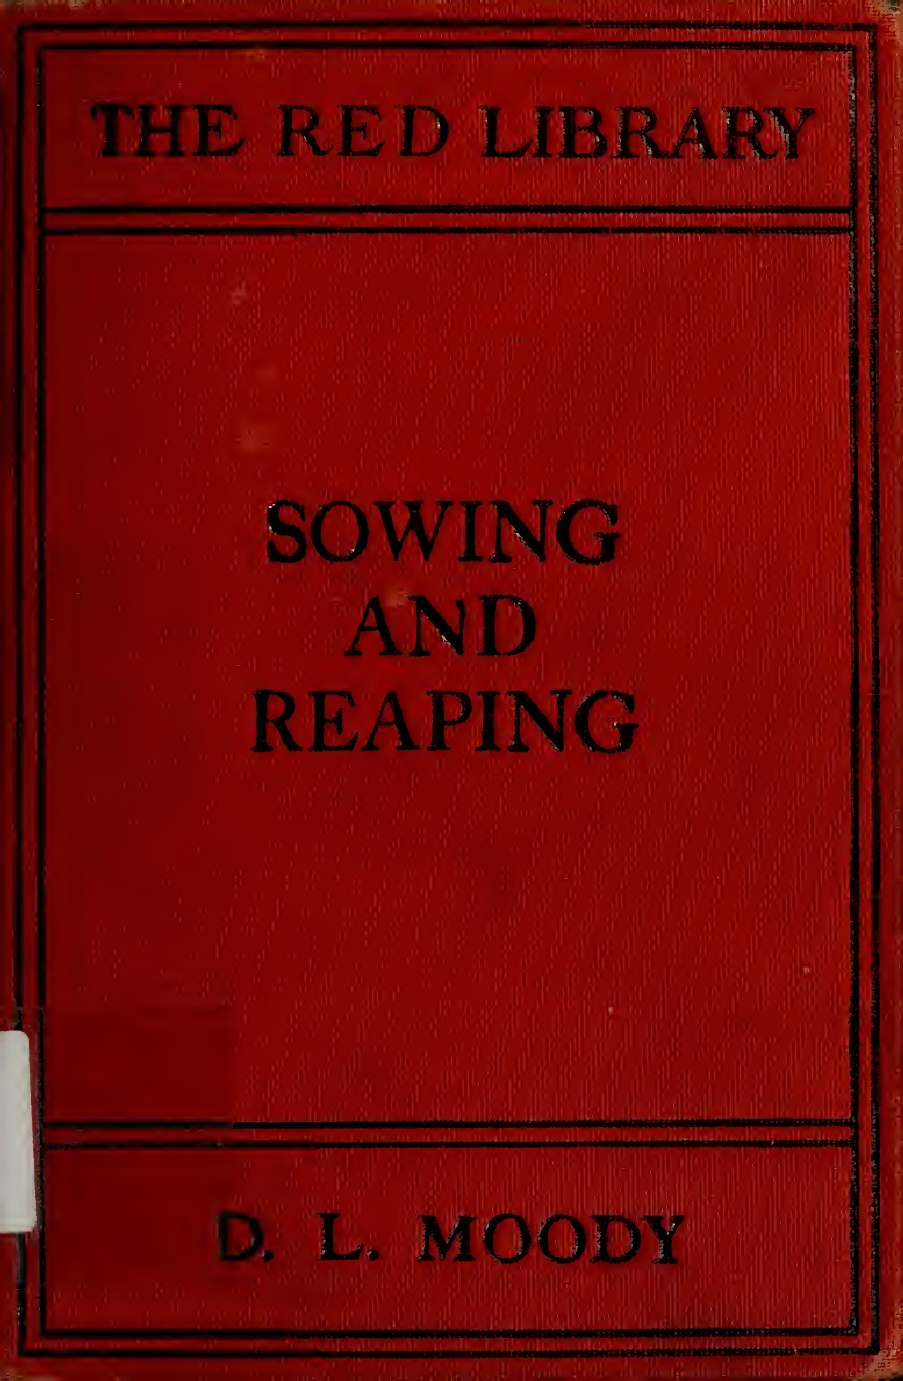 D. L. Moody-Sowing And Reaping-